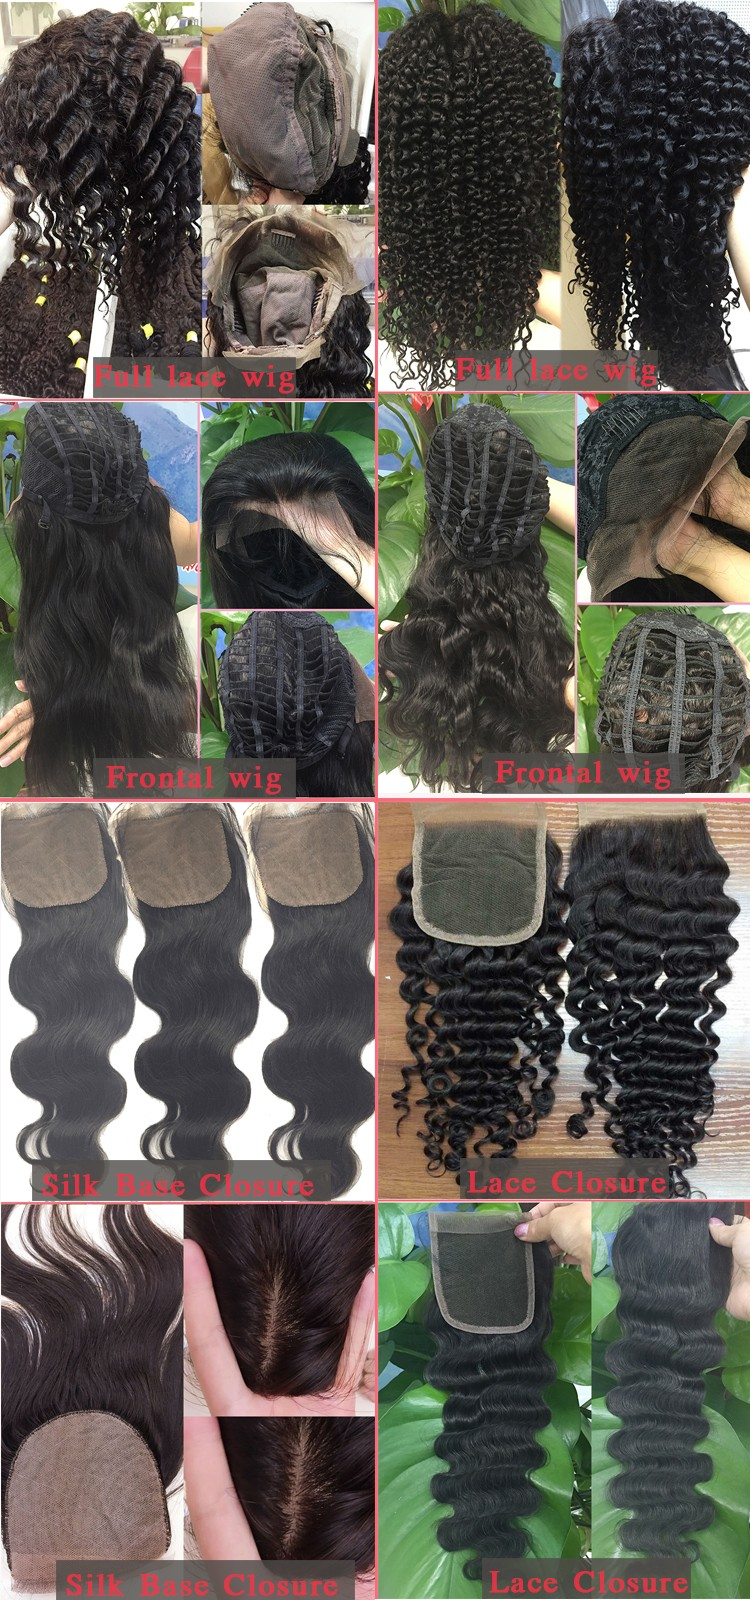 Best virgin indian curly hair weave bundles wholesale indian best virgin indian curly hair weave bundles wholesale indian brazilian hair weave bundles wholesale indian hair pmusecretfo Images